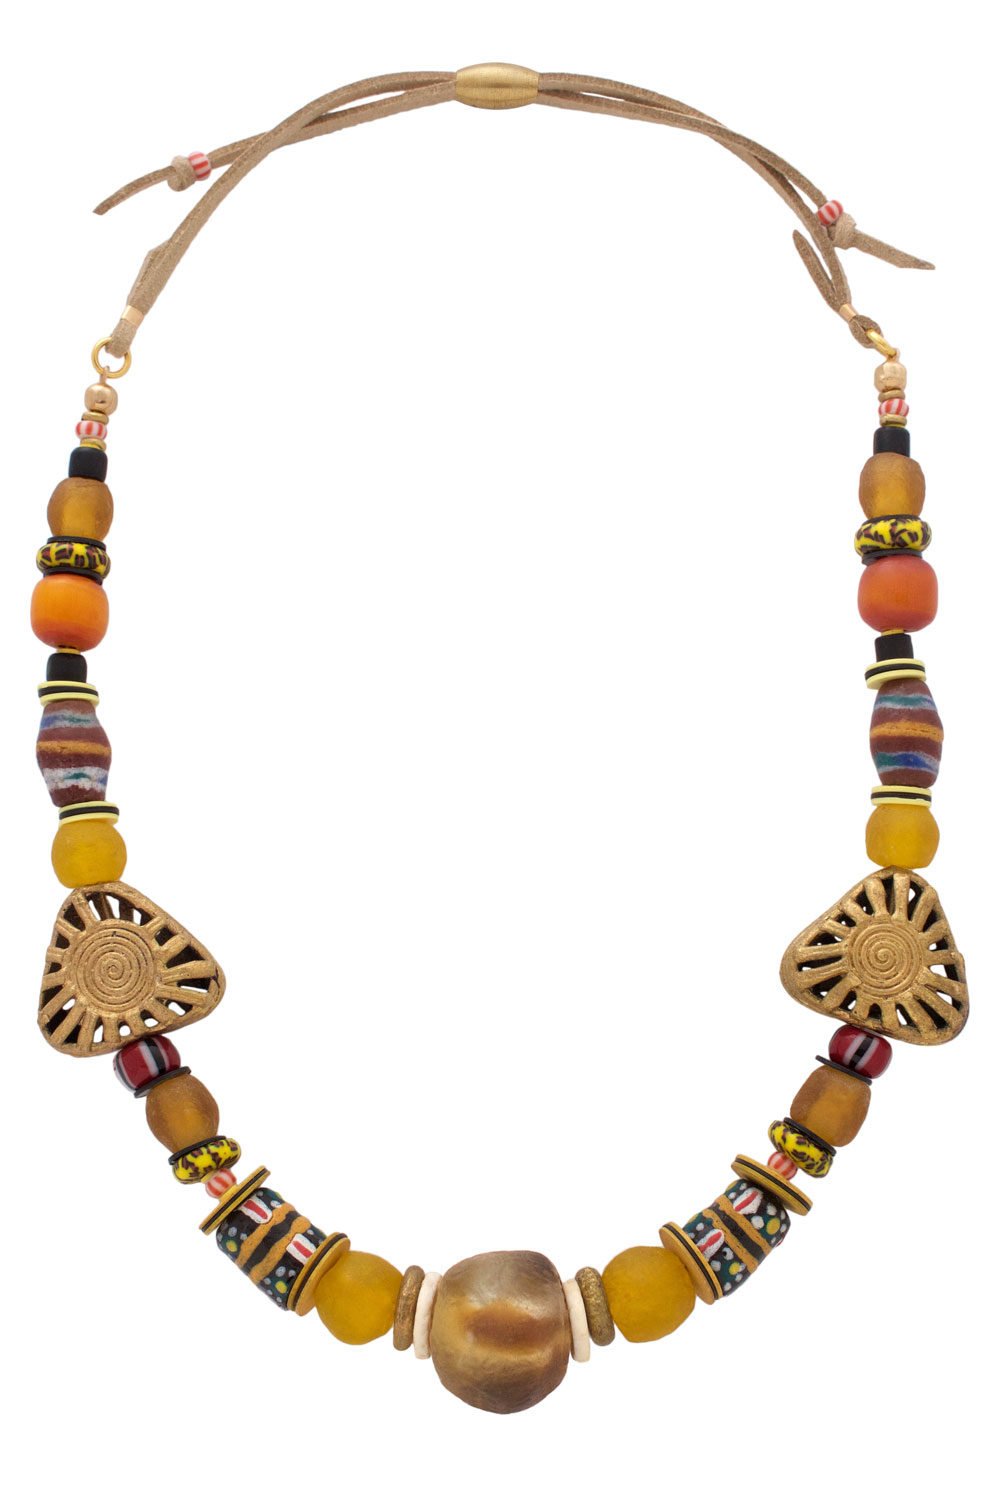 Manjano Yellow Nadira Grande Necklace by SHIKHAZURI